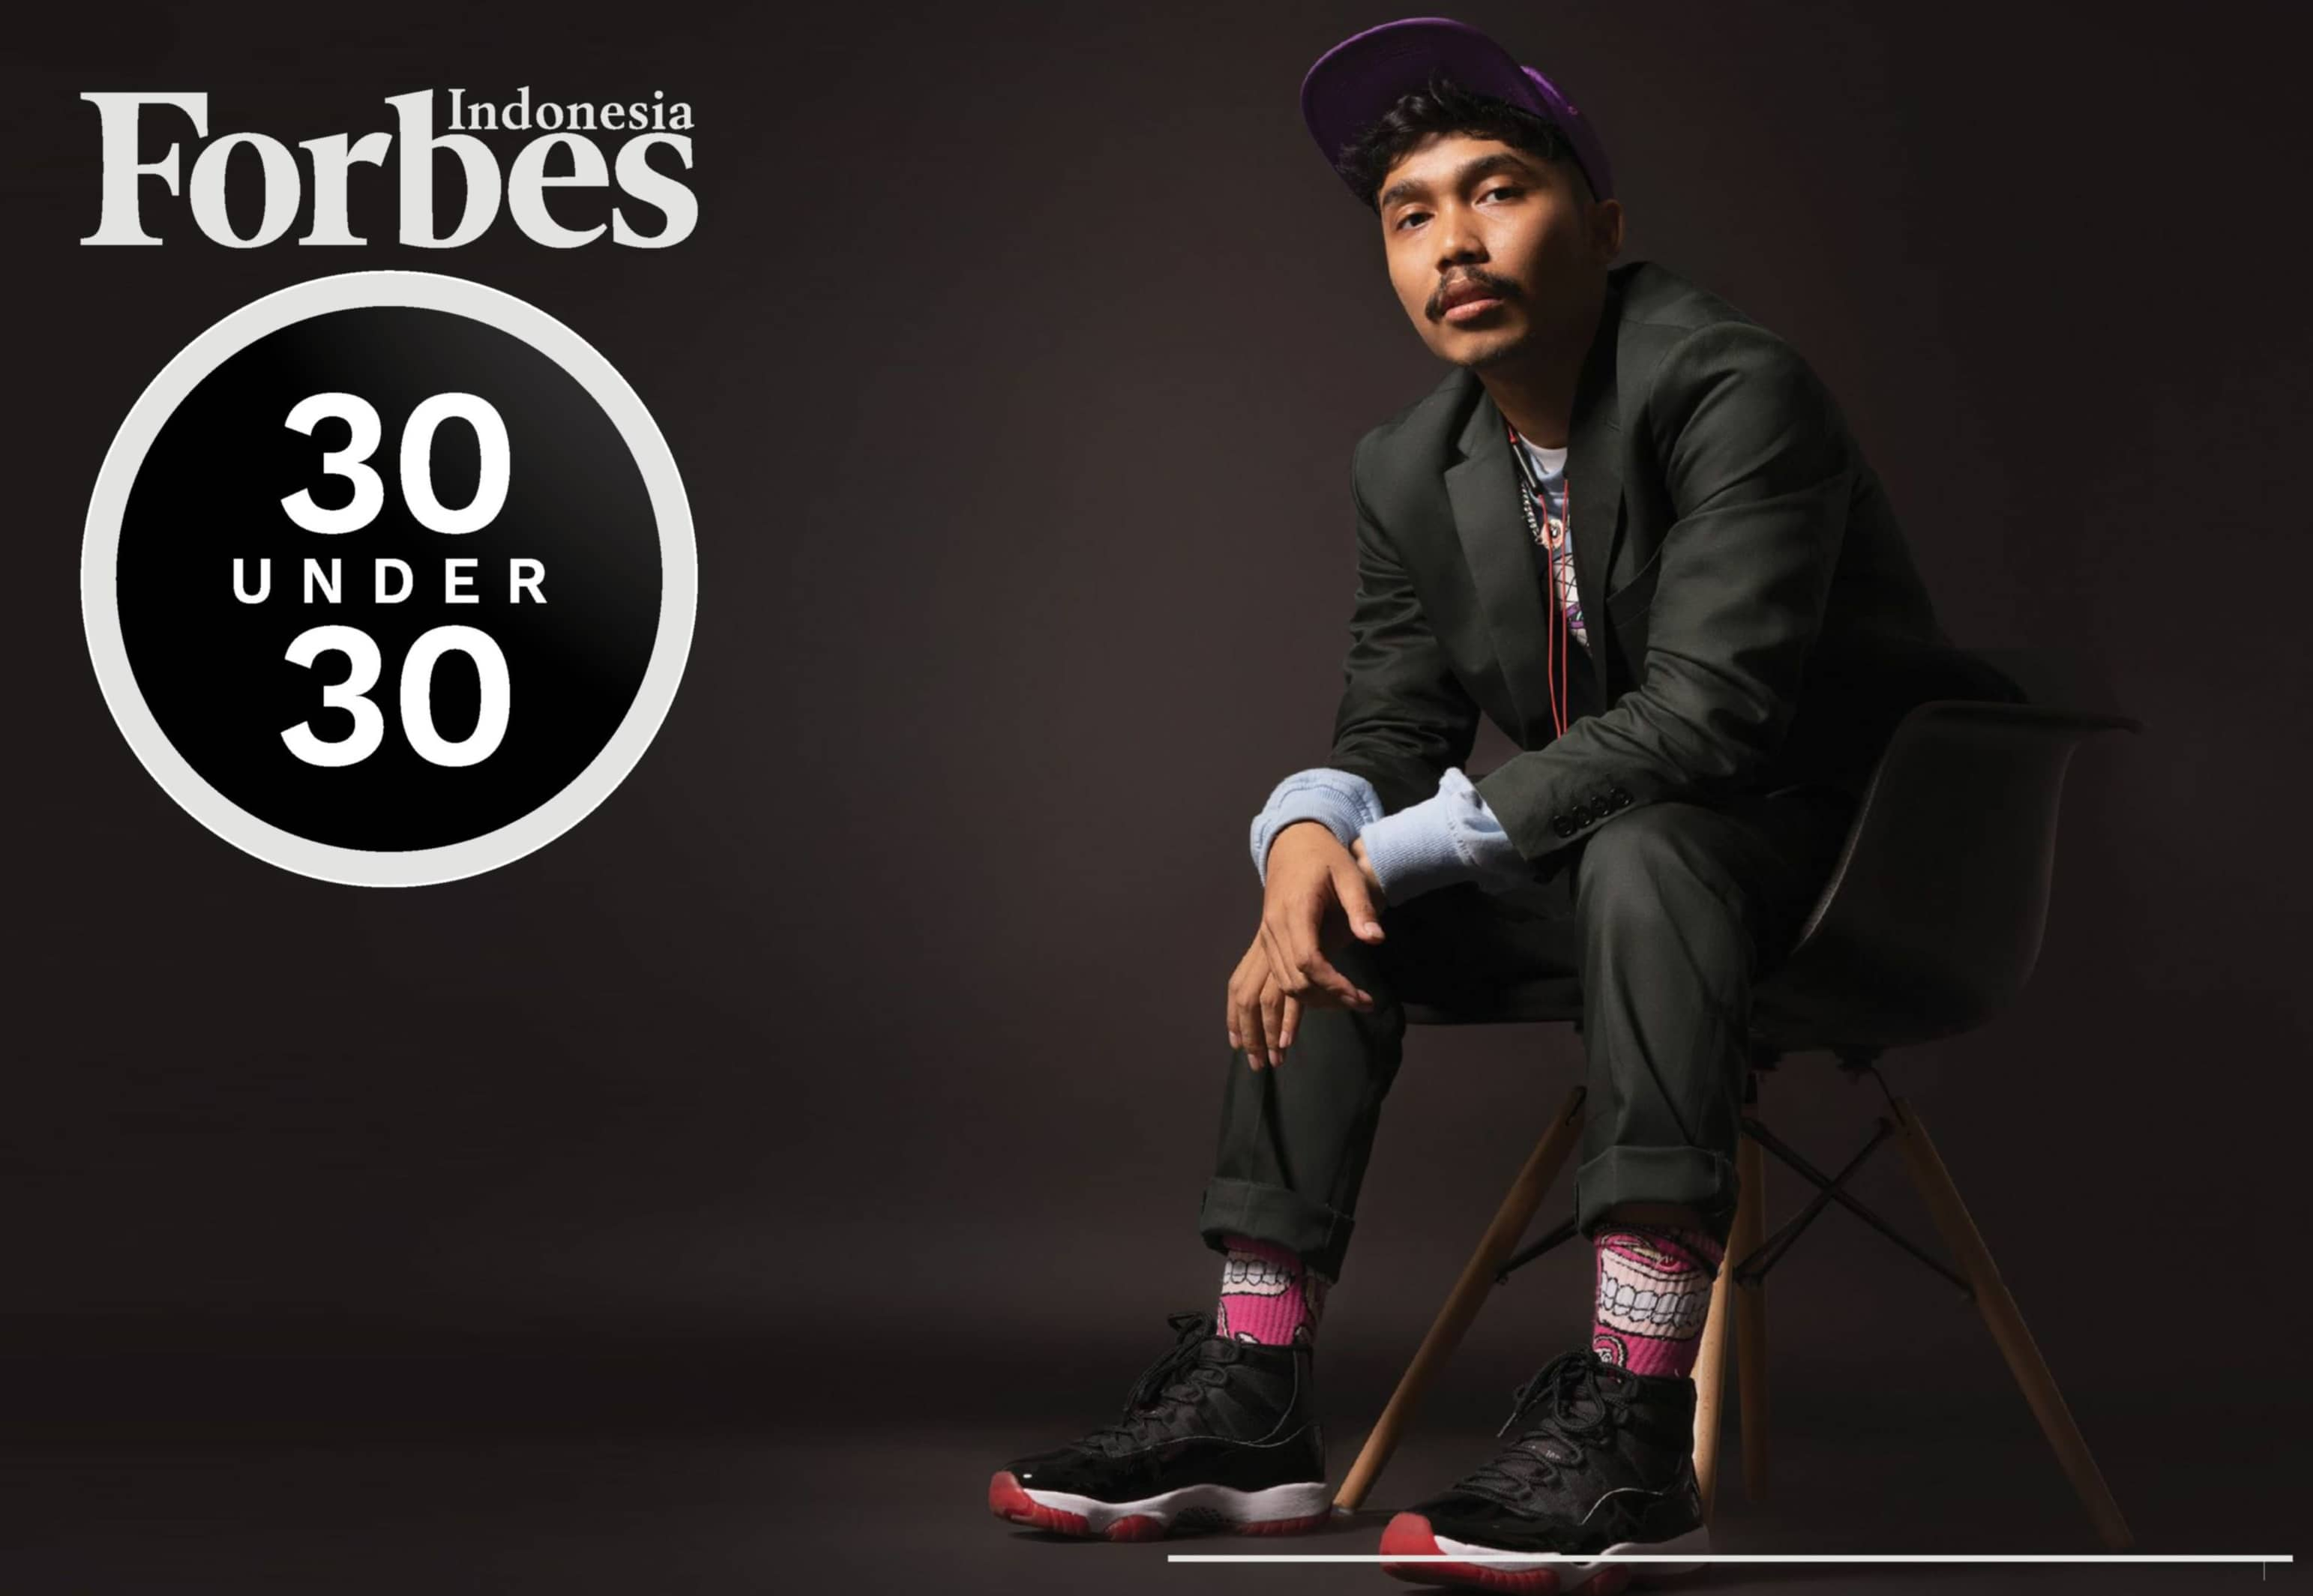 Forbes Indonesia 30 UNDER 30 CLASS OF 2020